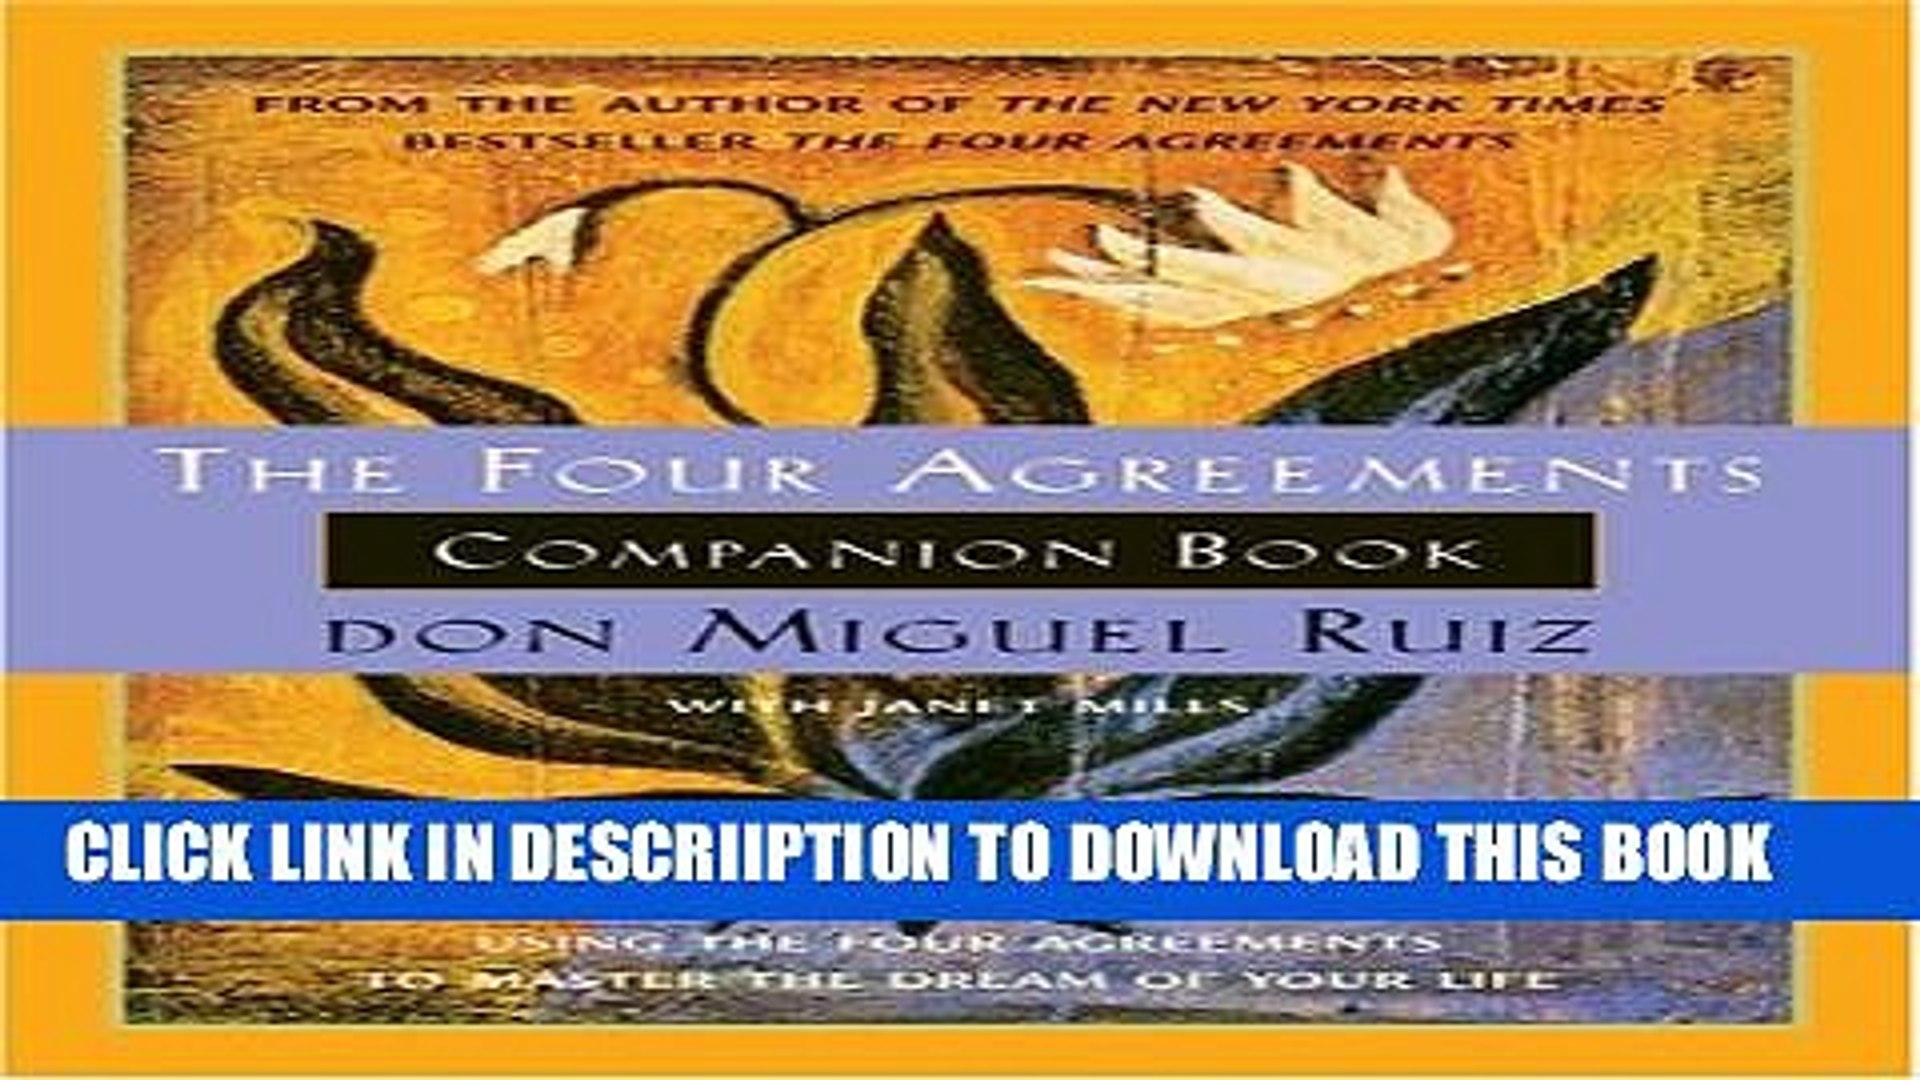 Four Agreements Book Free Download New The Four Agreements Companion Book Using The Four Agreements To Master The Dream Of Your